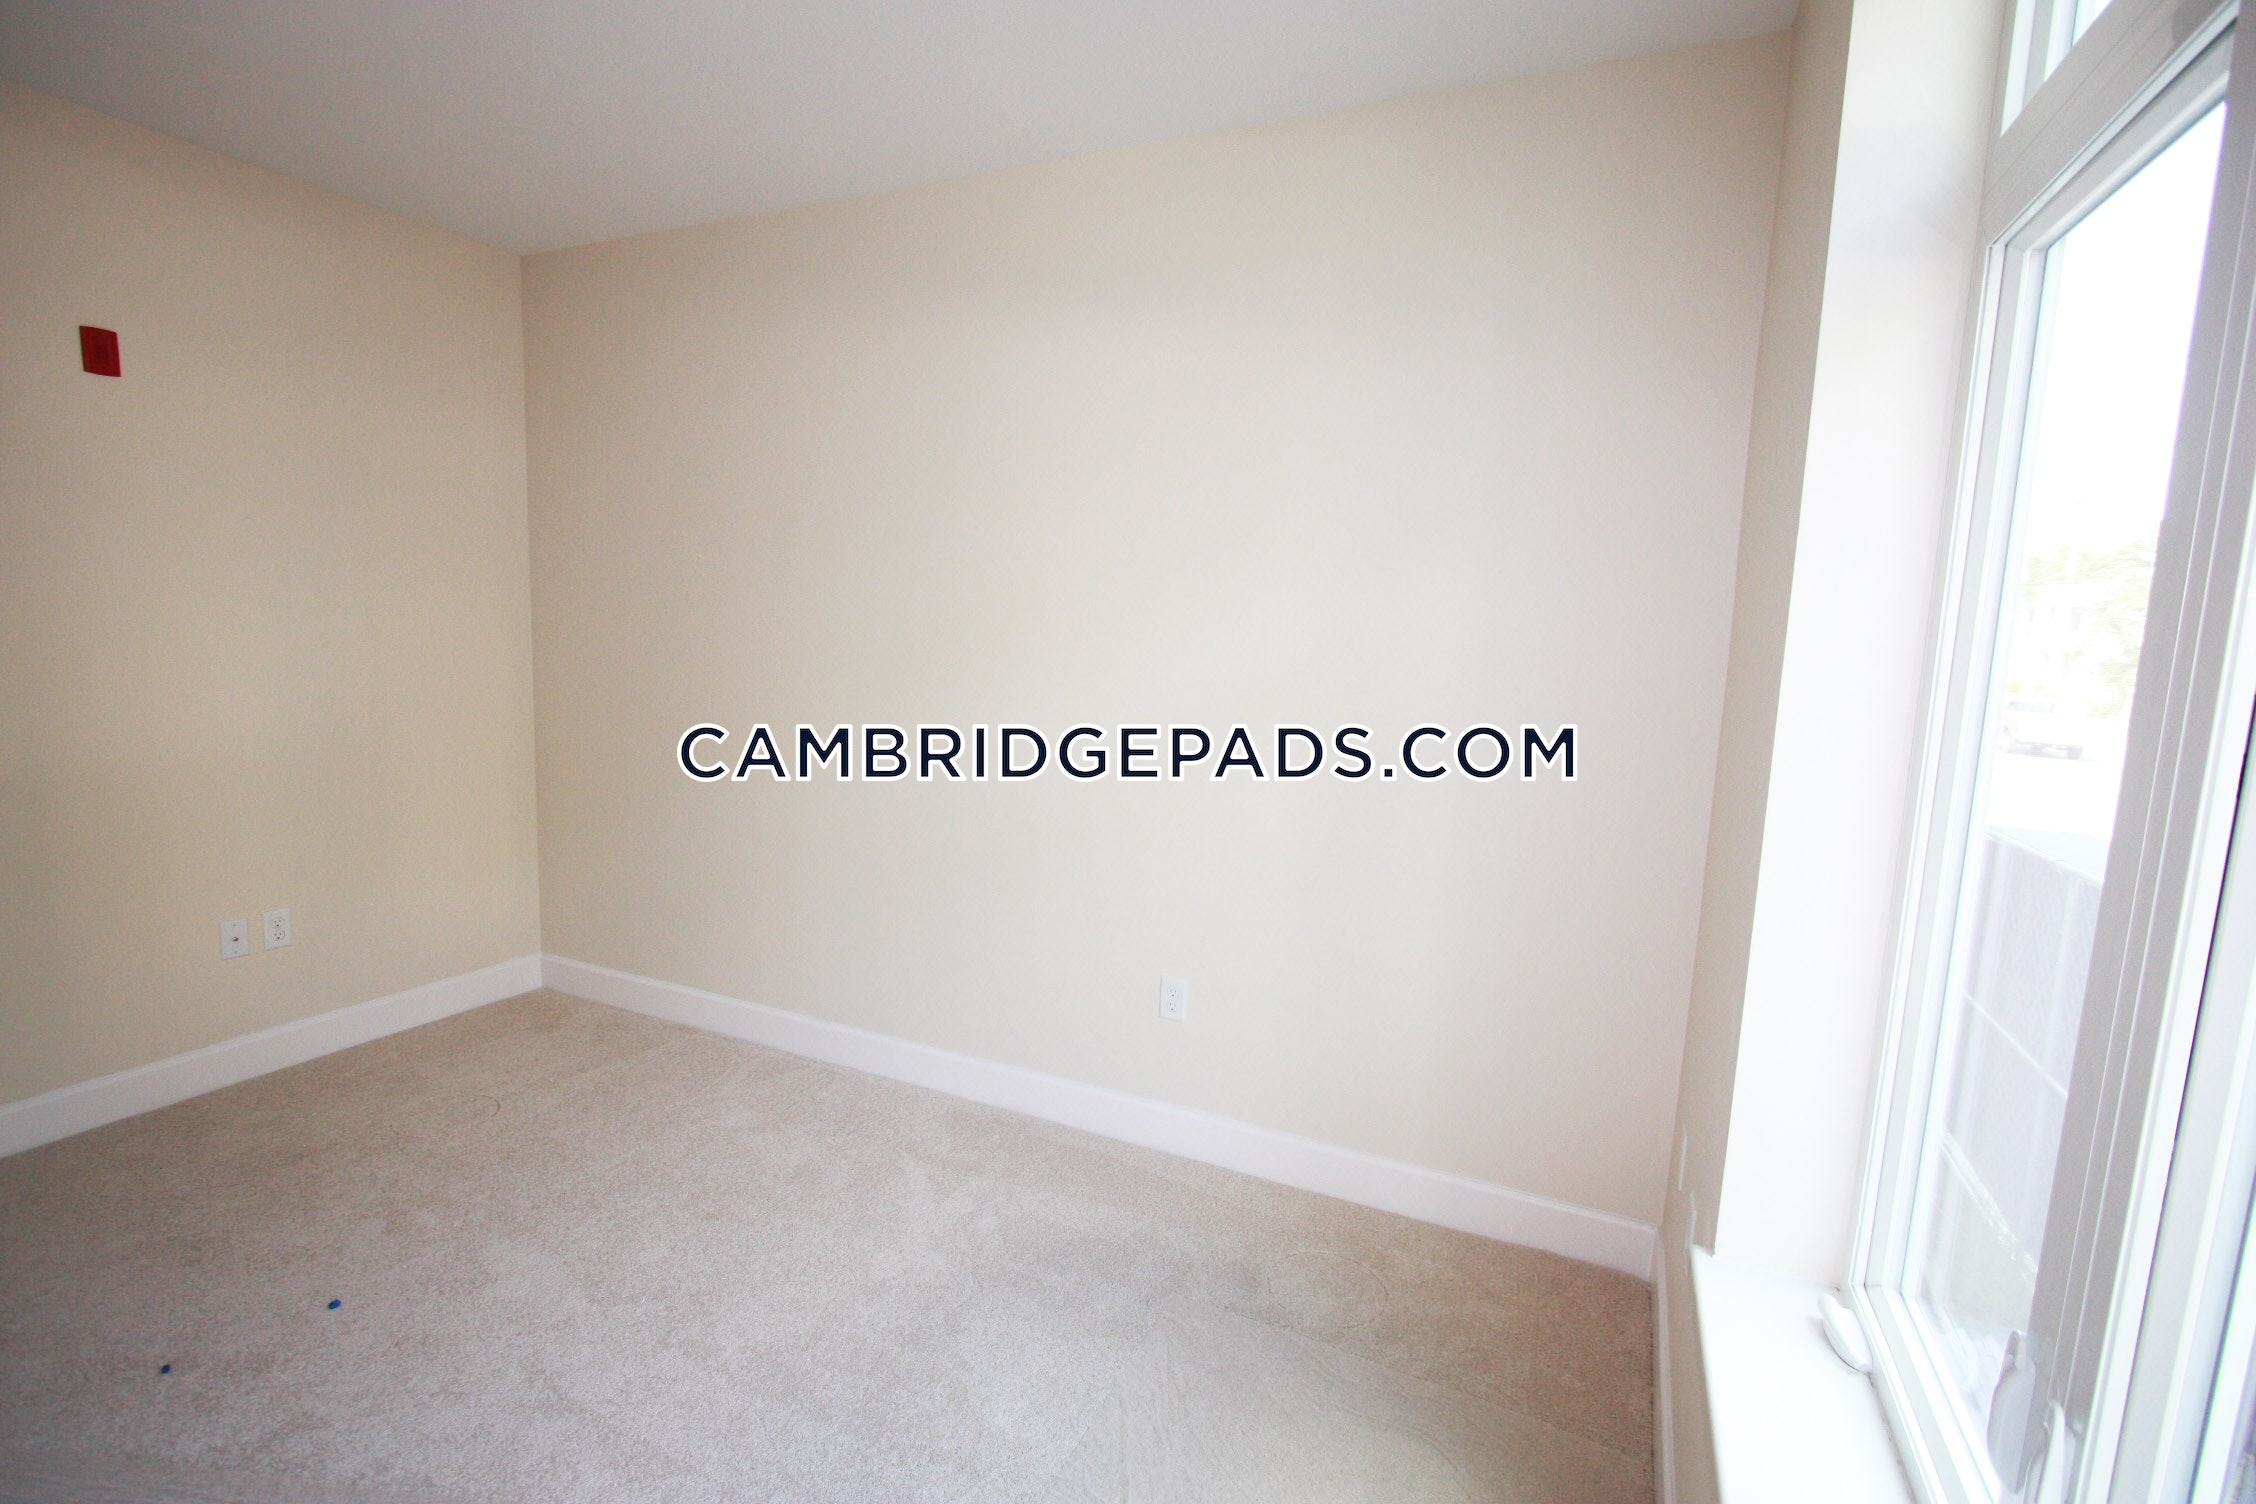 CAMBRIDGE - DAVIS SQUARE - $4,000